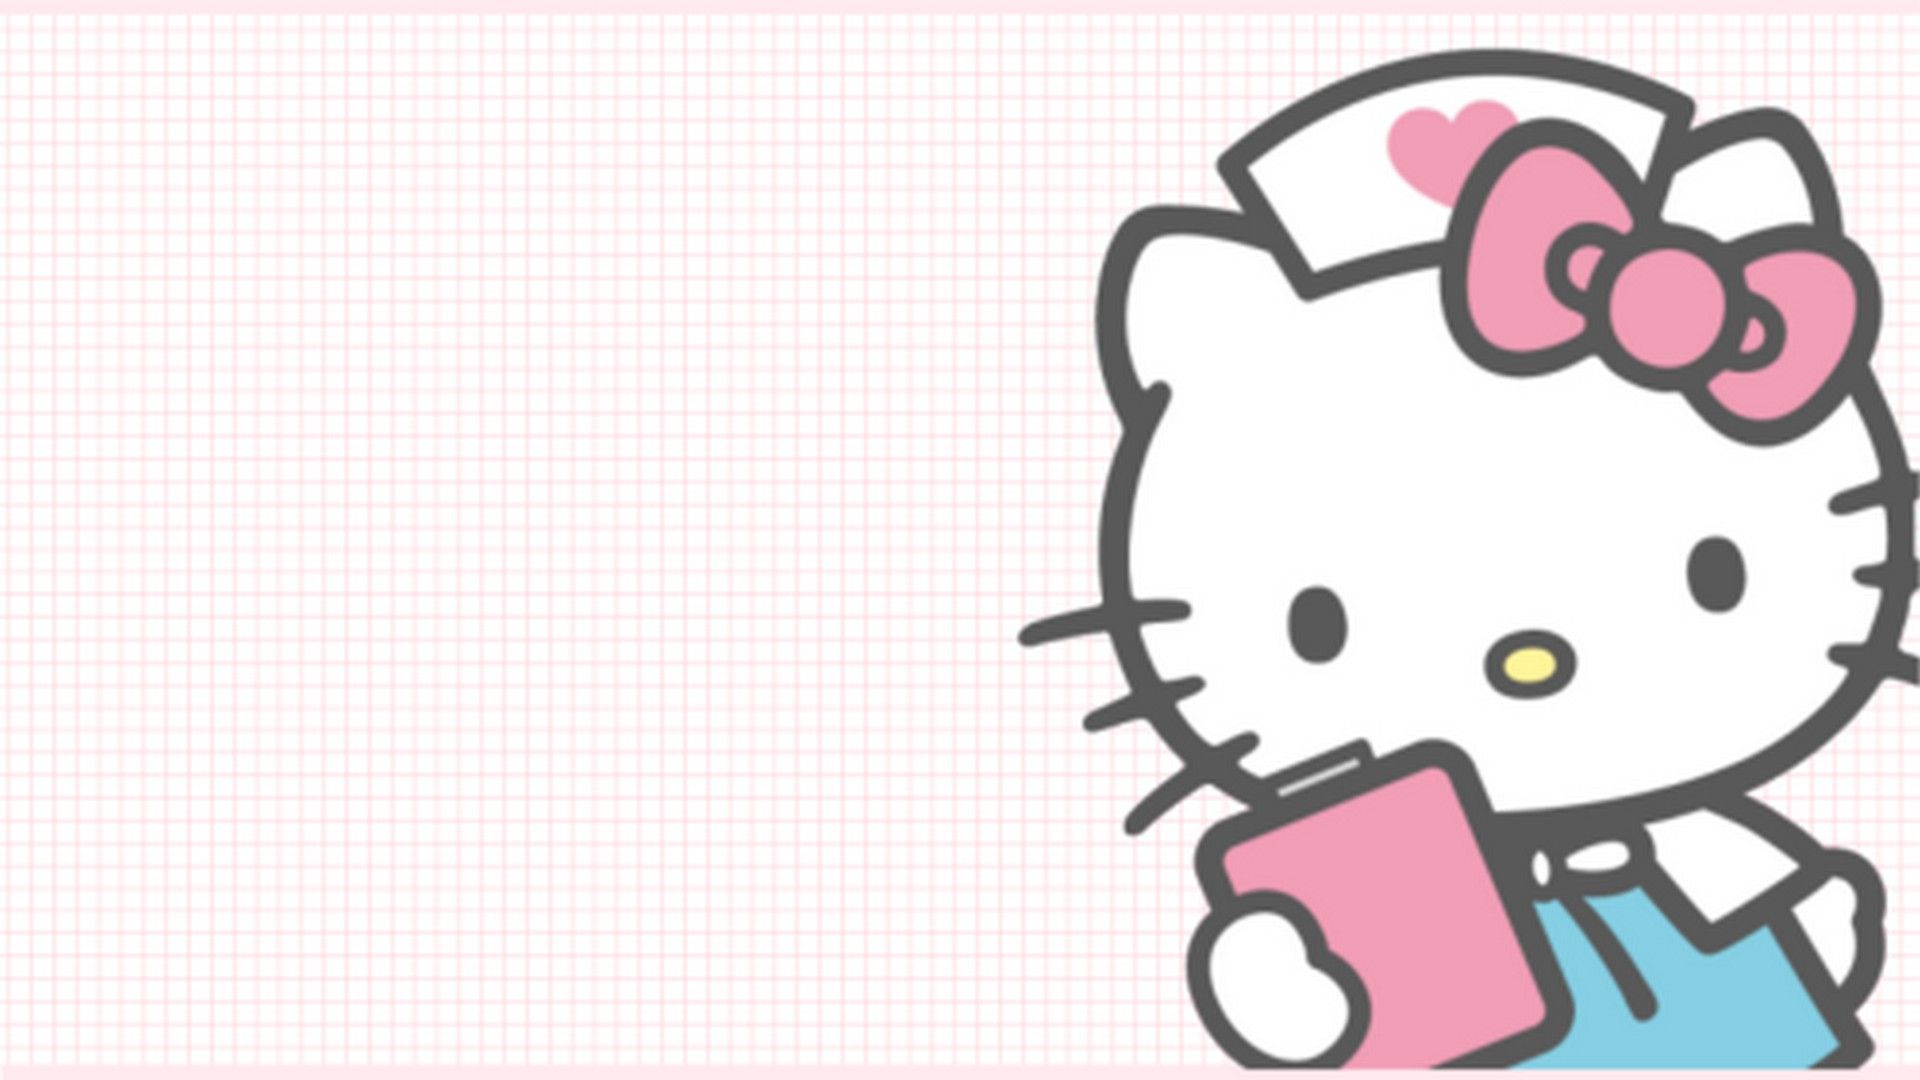 Wallpaper Hello Kitty Characters Desktop Best Hd Wallpapers Hello Kitty Pictures Hello Kitty Hello Kitty Characters